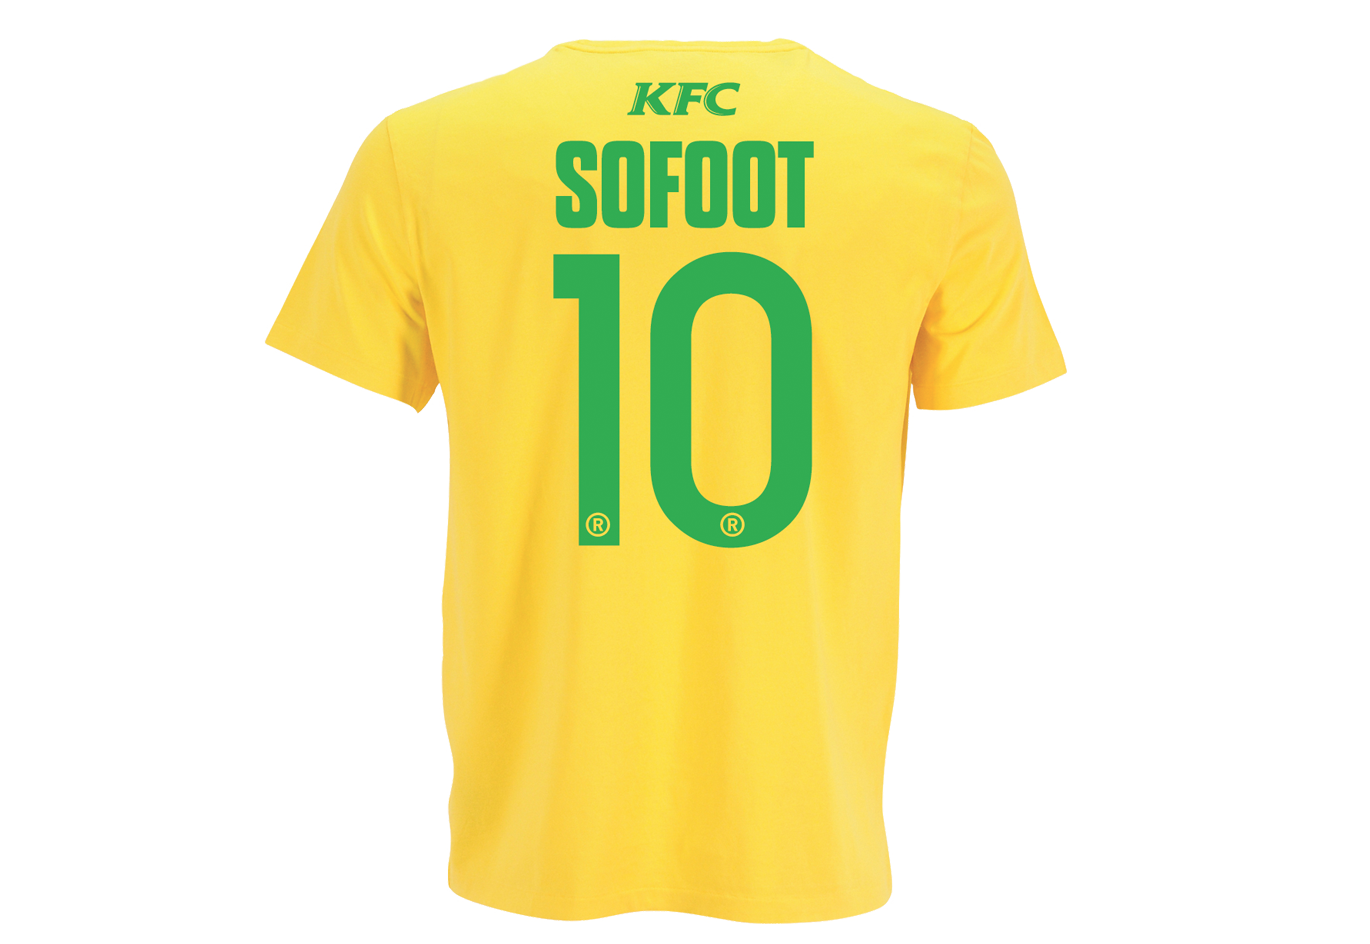 kfc-sofoot-so-foot-dos-jaune